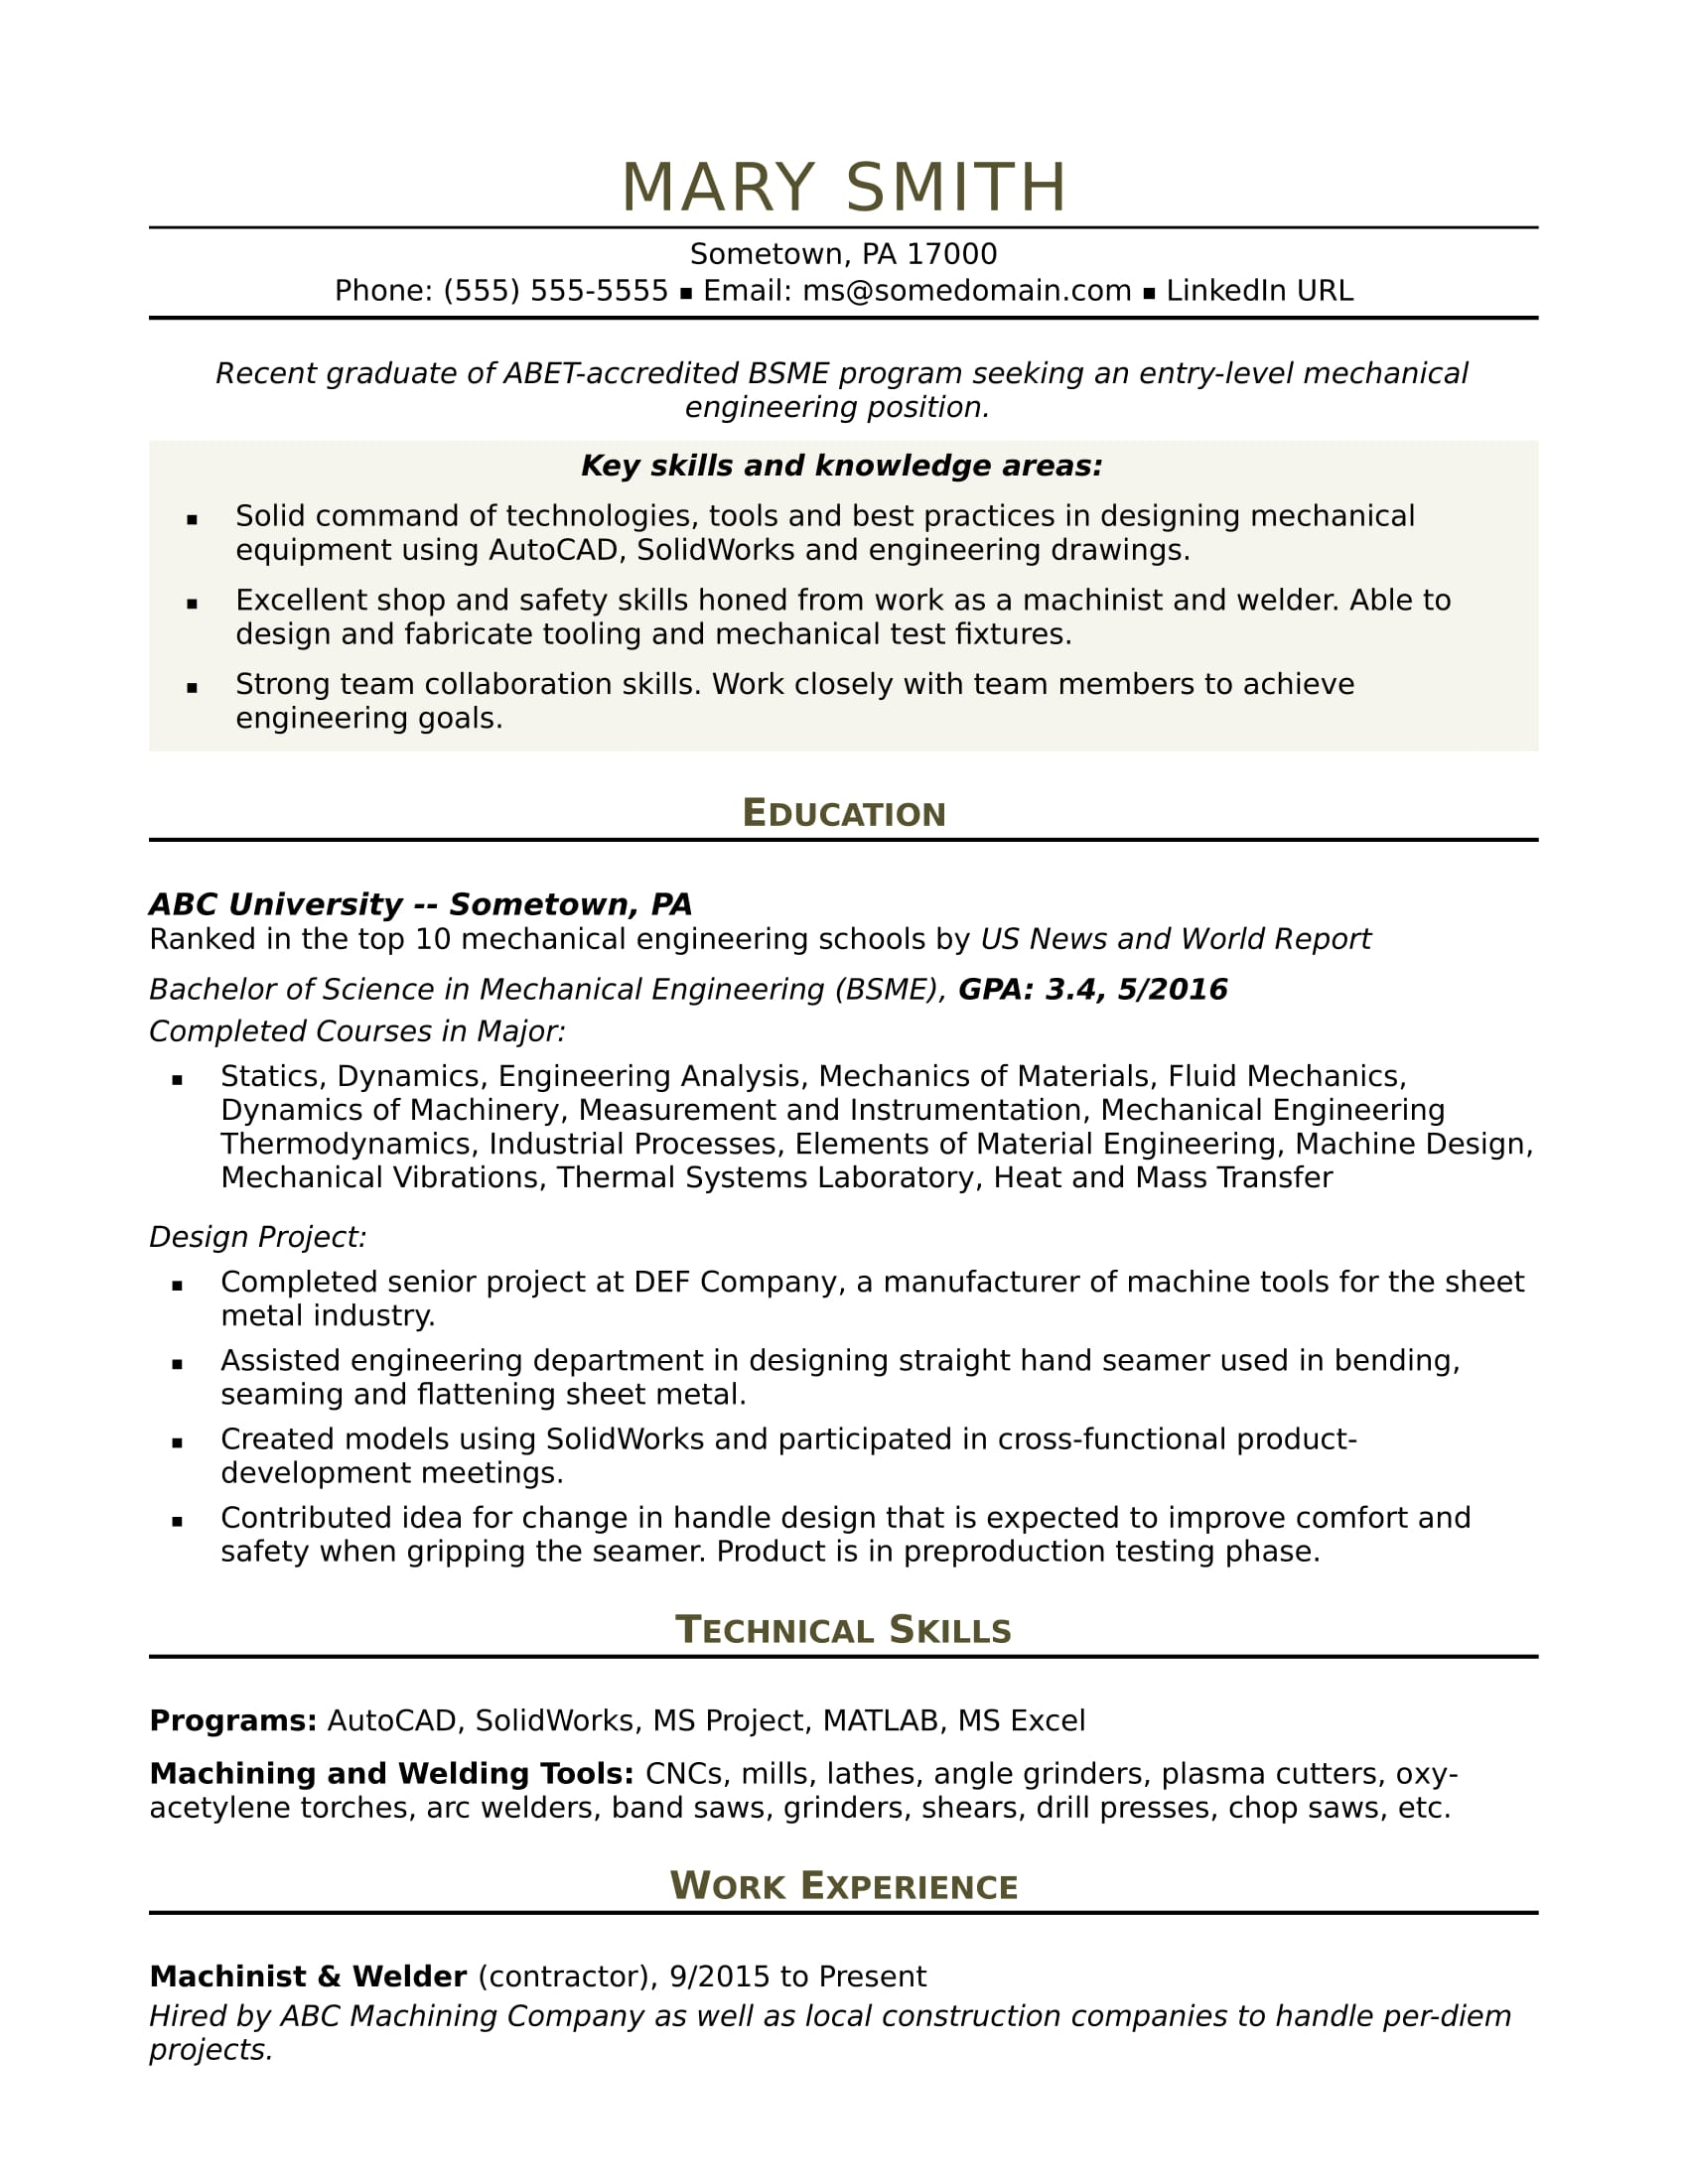 sample resume for an entry level mechanical engineer monster summary examples mechanic Resume Resume Summary Examples For Mechanic